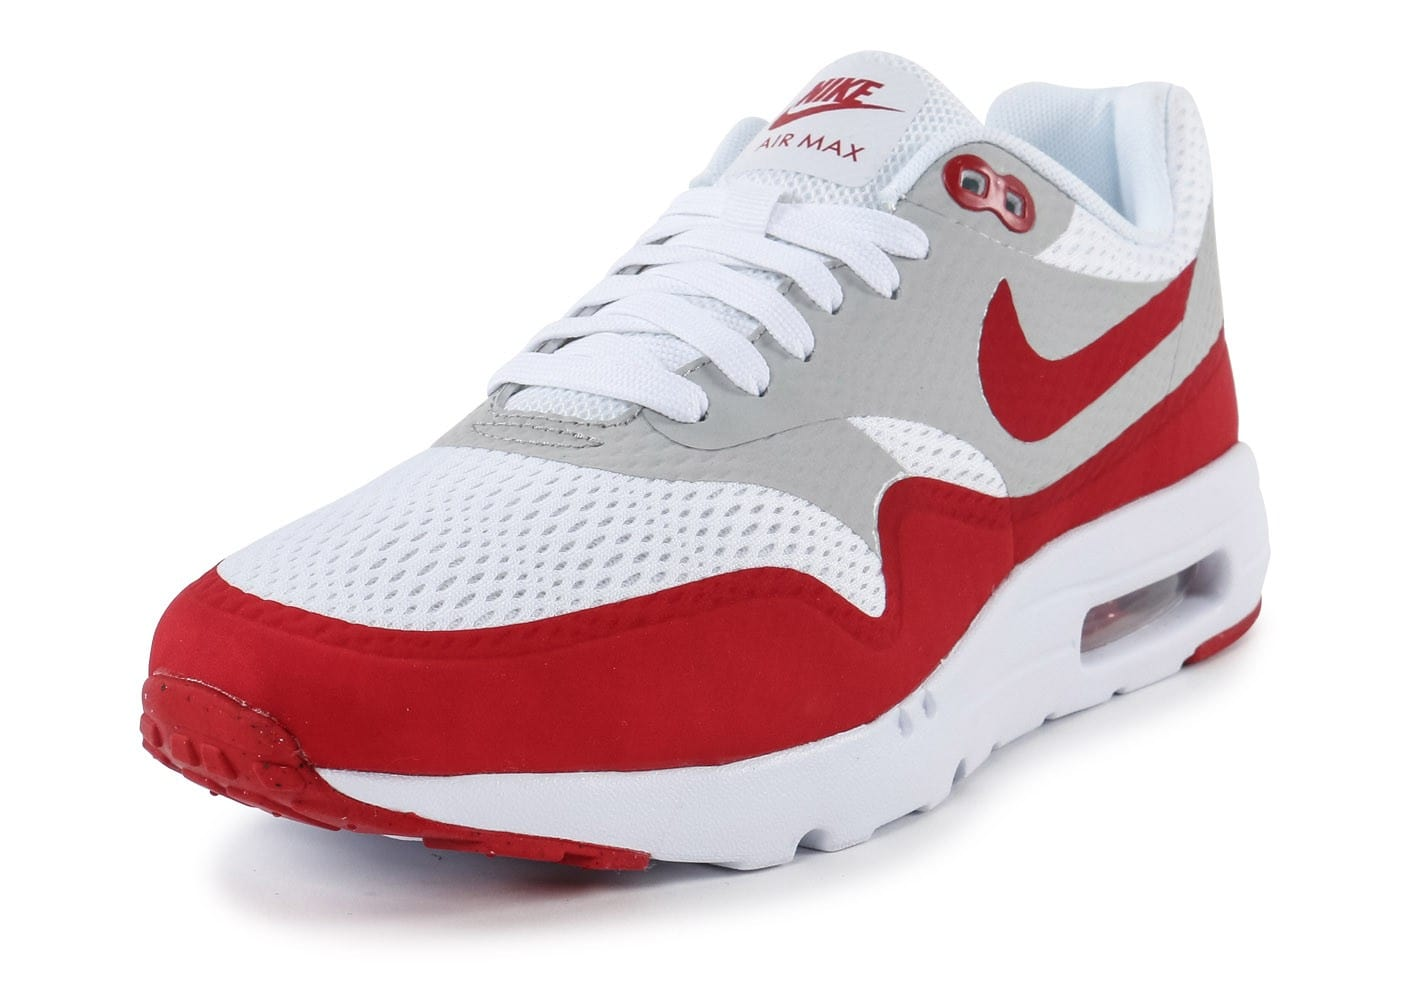 bas prix 6d64d 5b03c real nike air max 1 essential femme rouge 5612c 4a4f4